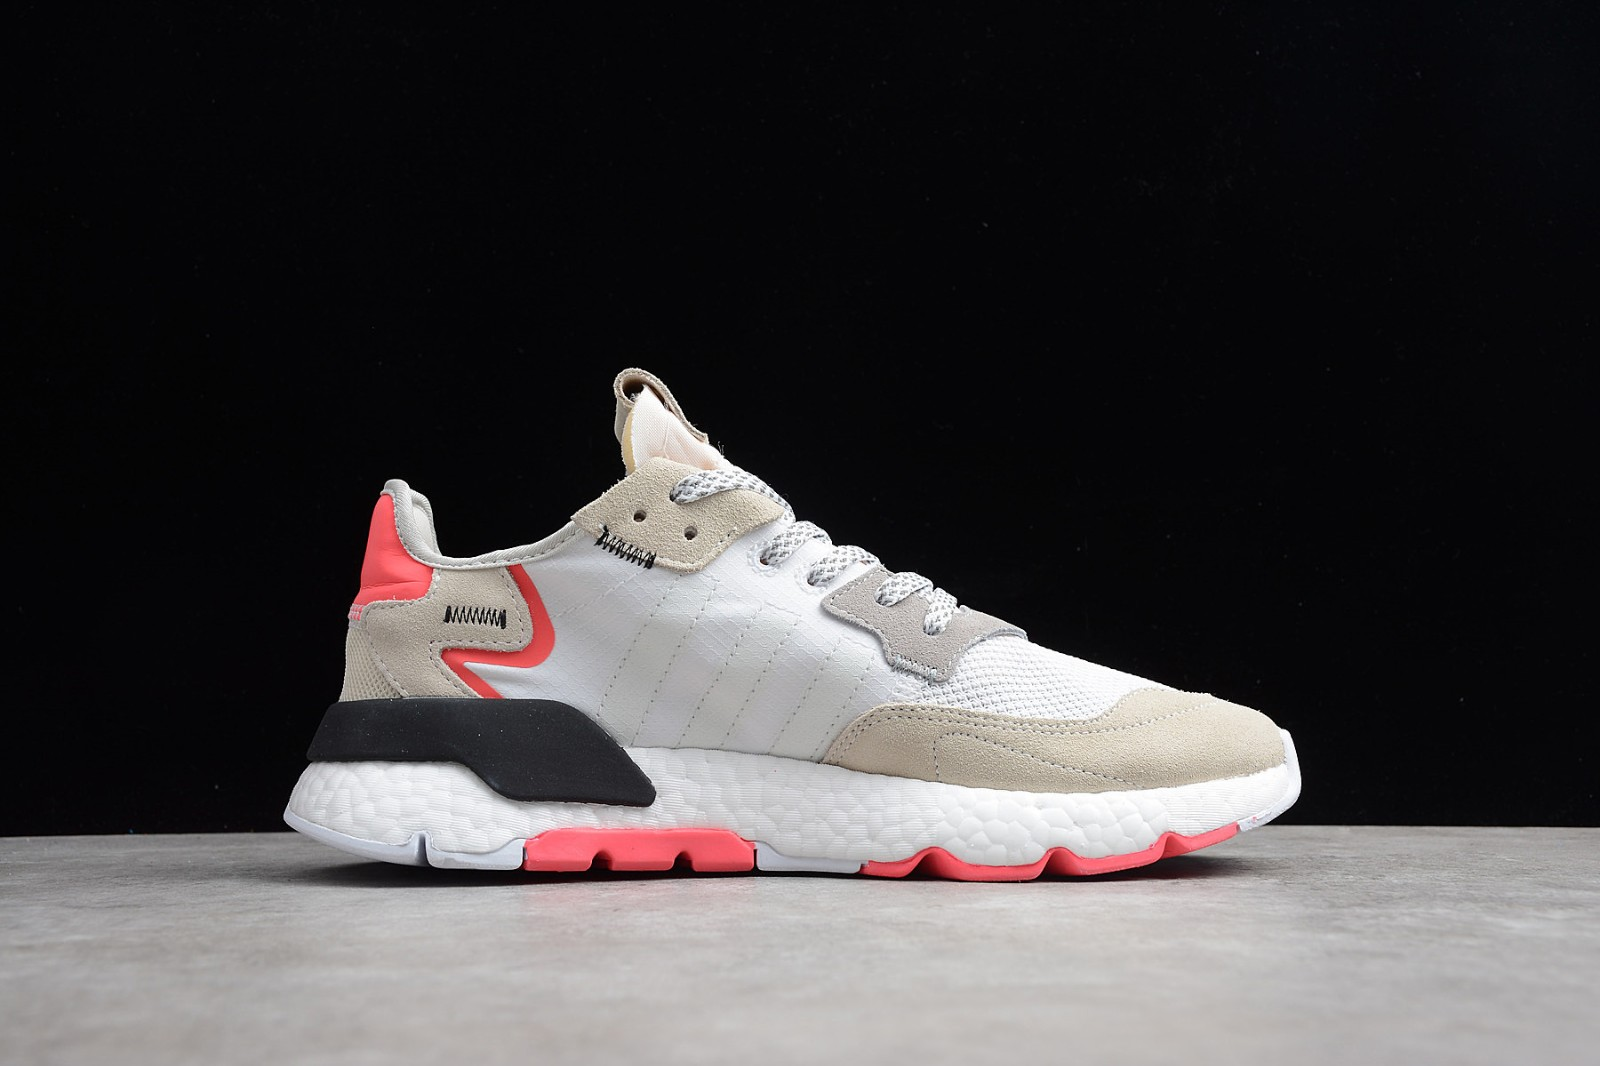 Adidas Nite Jogger 2019 Boost 3M White Red Grey F34123